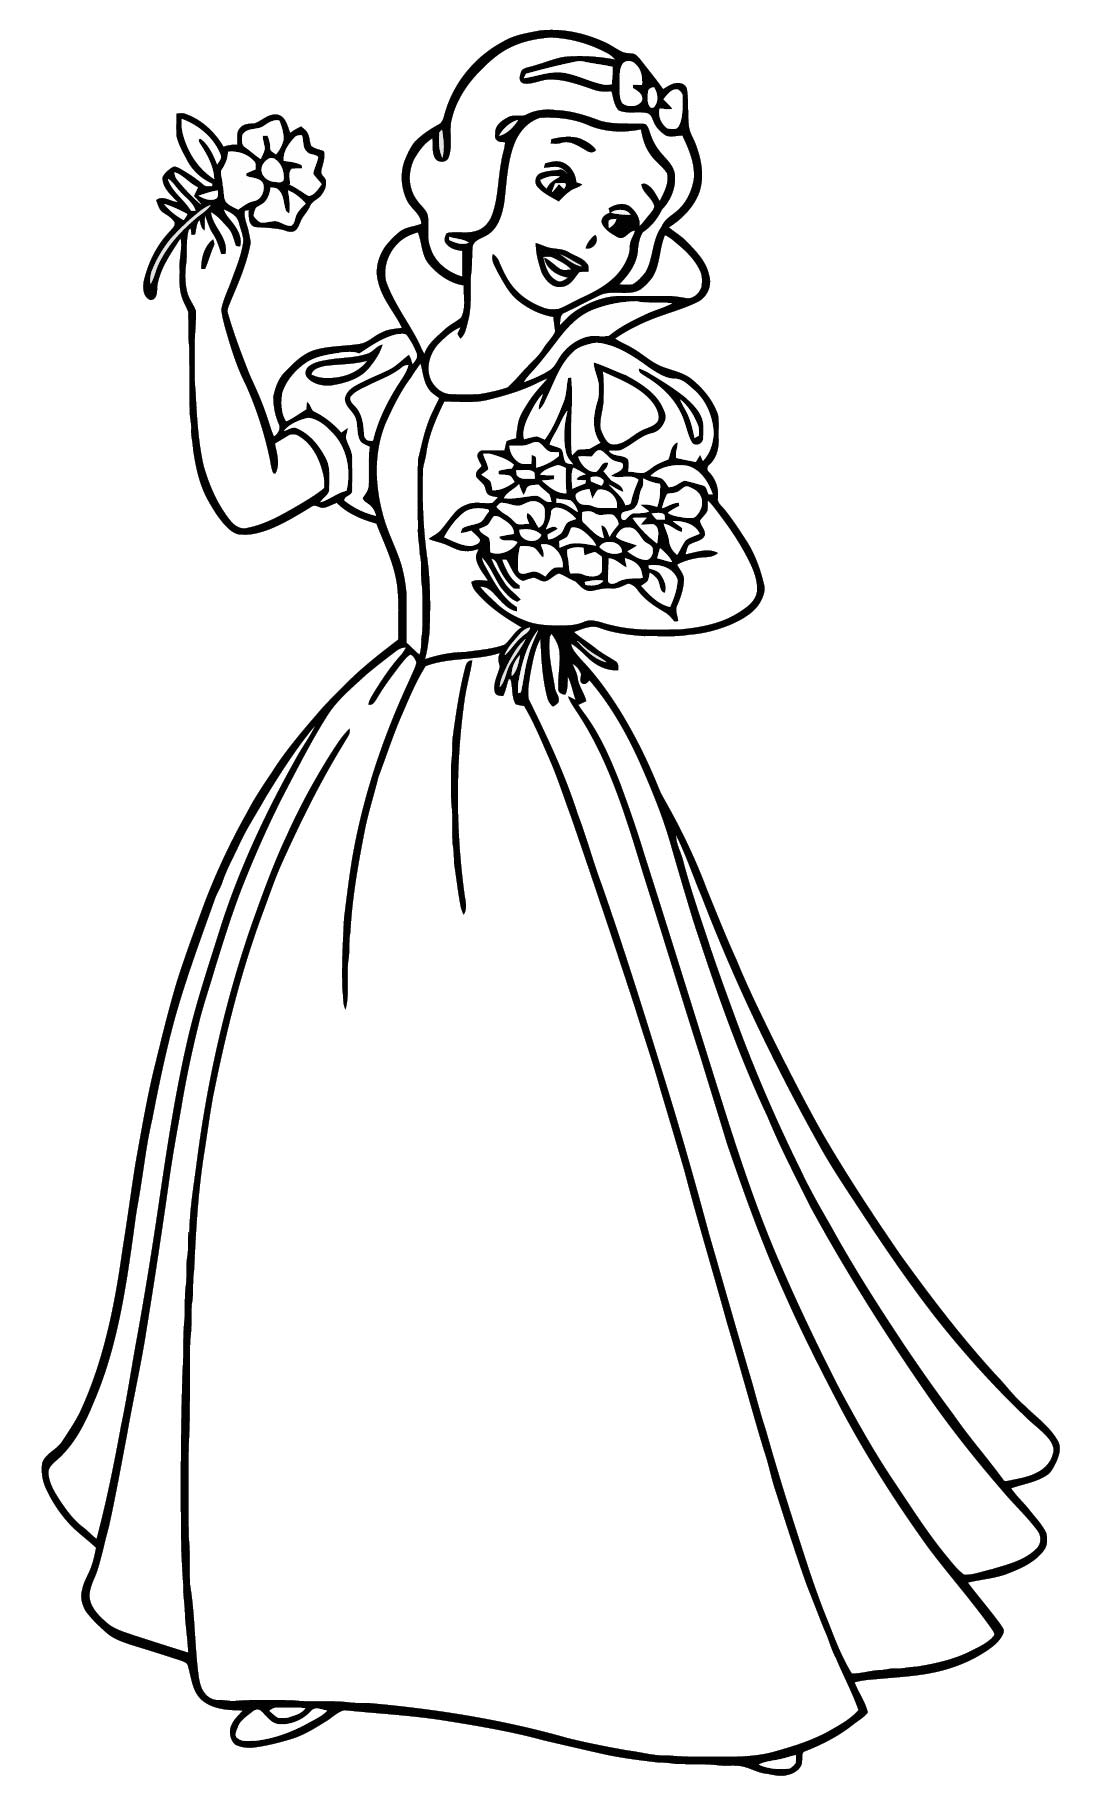 Snow White Coloring Page 087